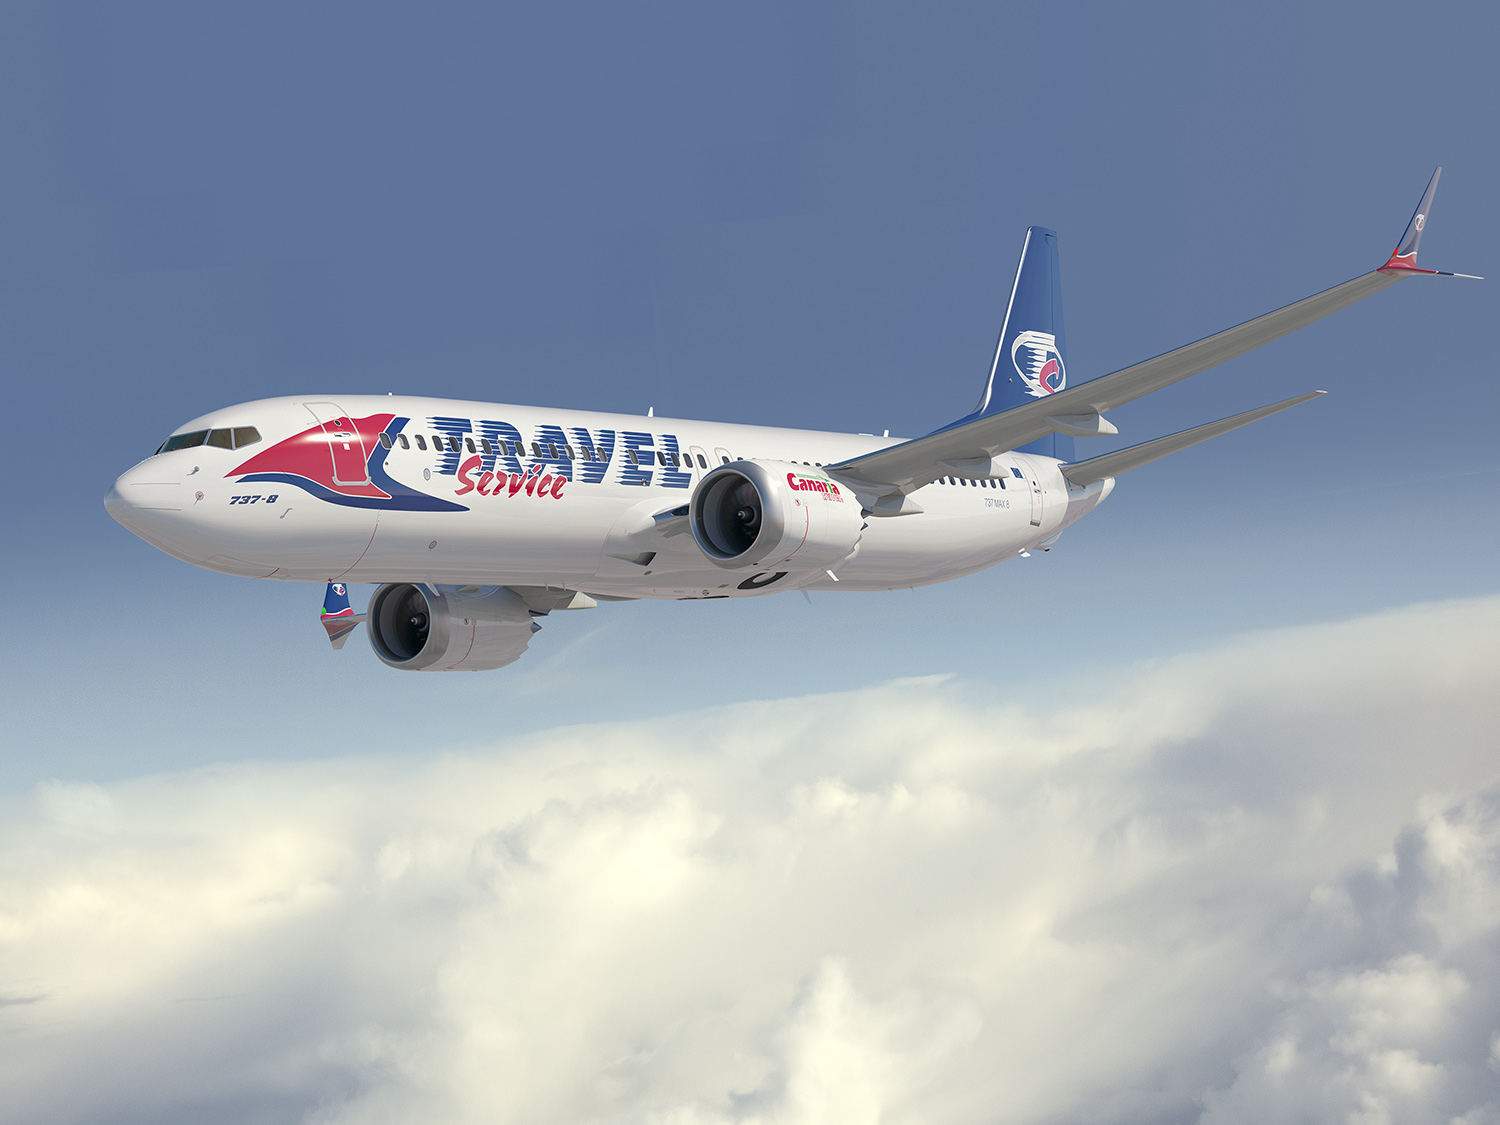 Travel Service Boeing 737